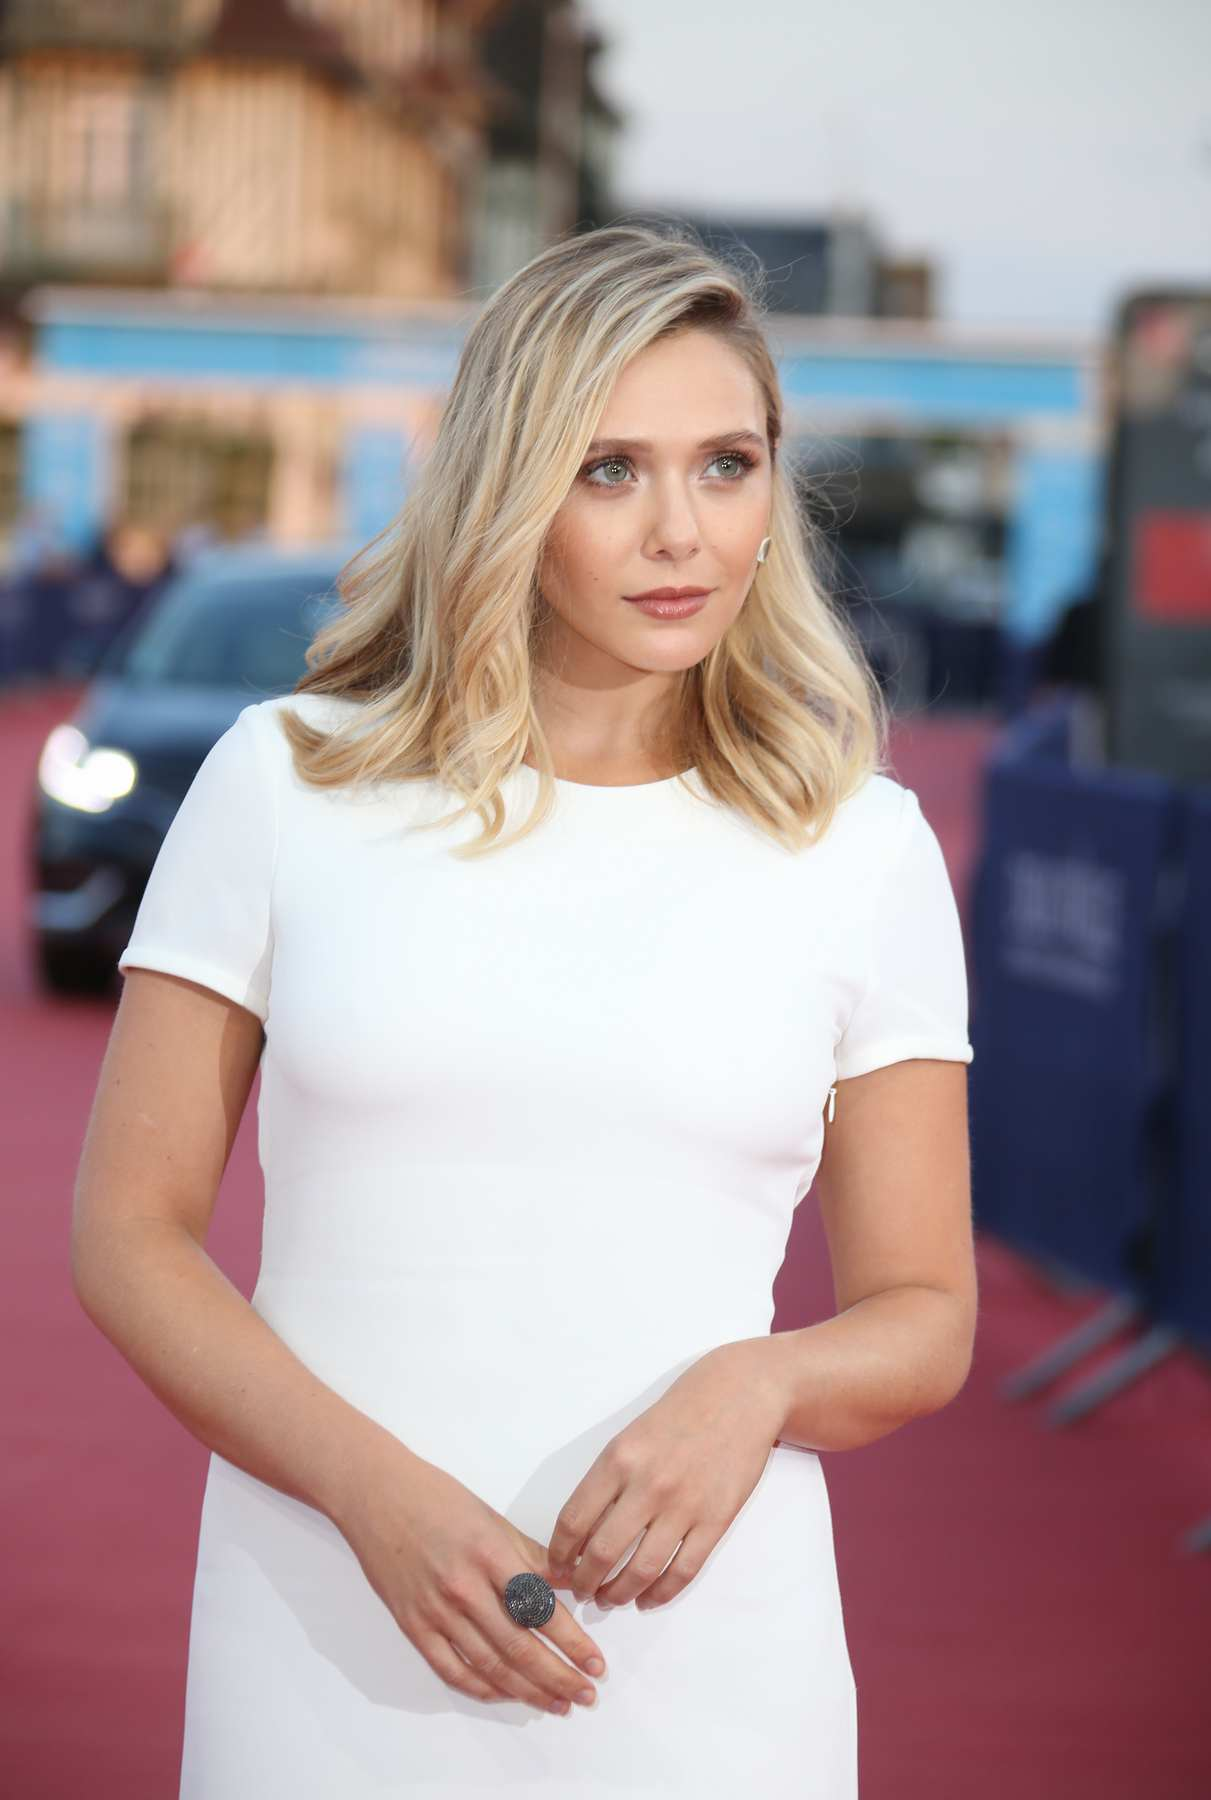 Elizabeth Olsen At Ruth And Alext Deauville Film Festival